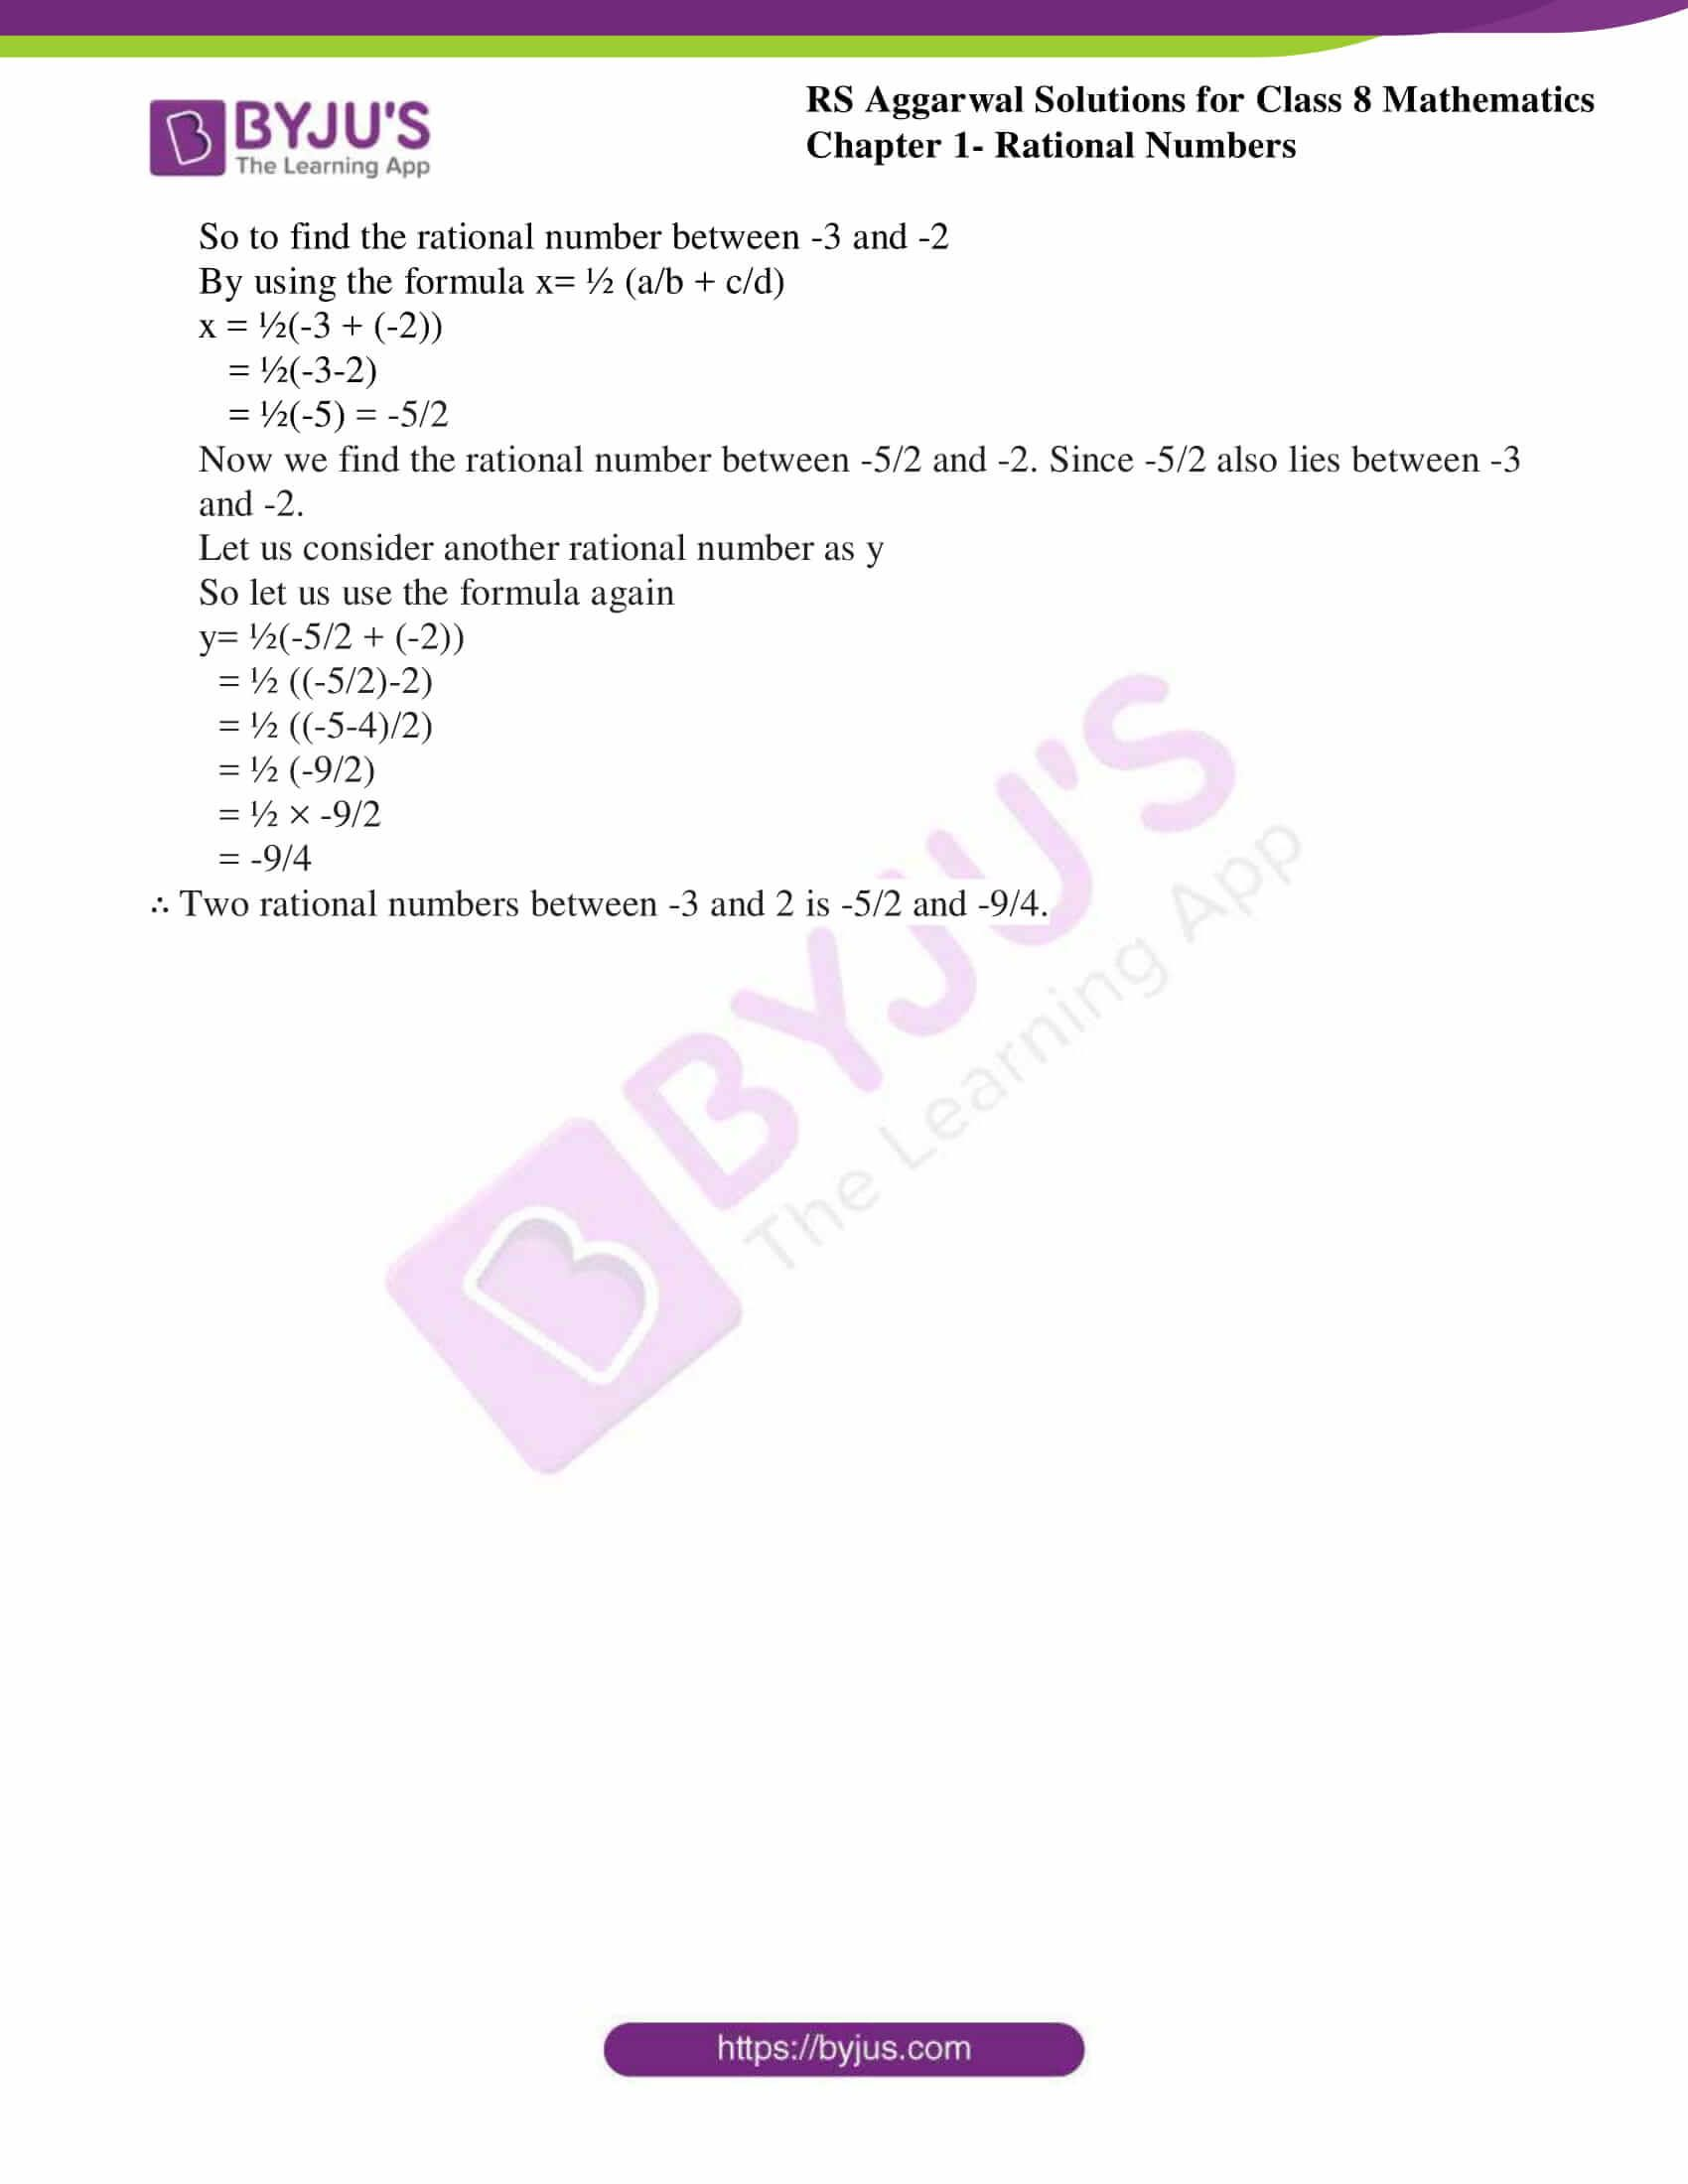 Fresh Ideas - RS Aggarwal Solutions for Class 8 Chapter 1 Rational